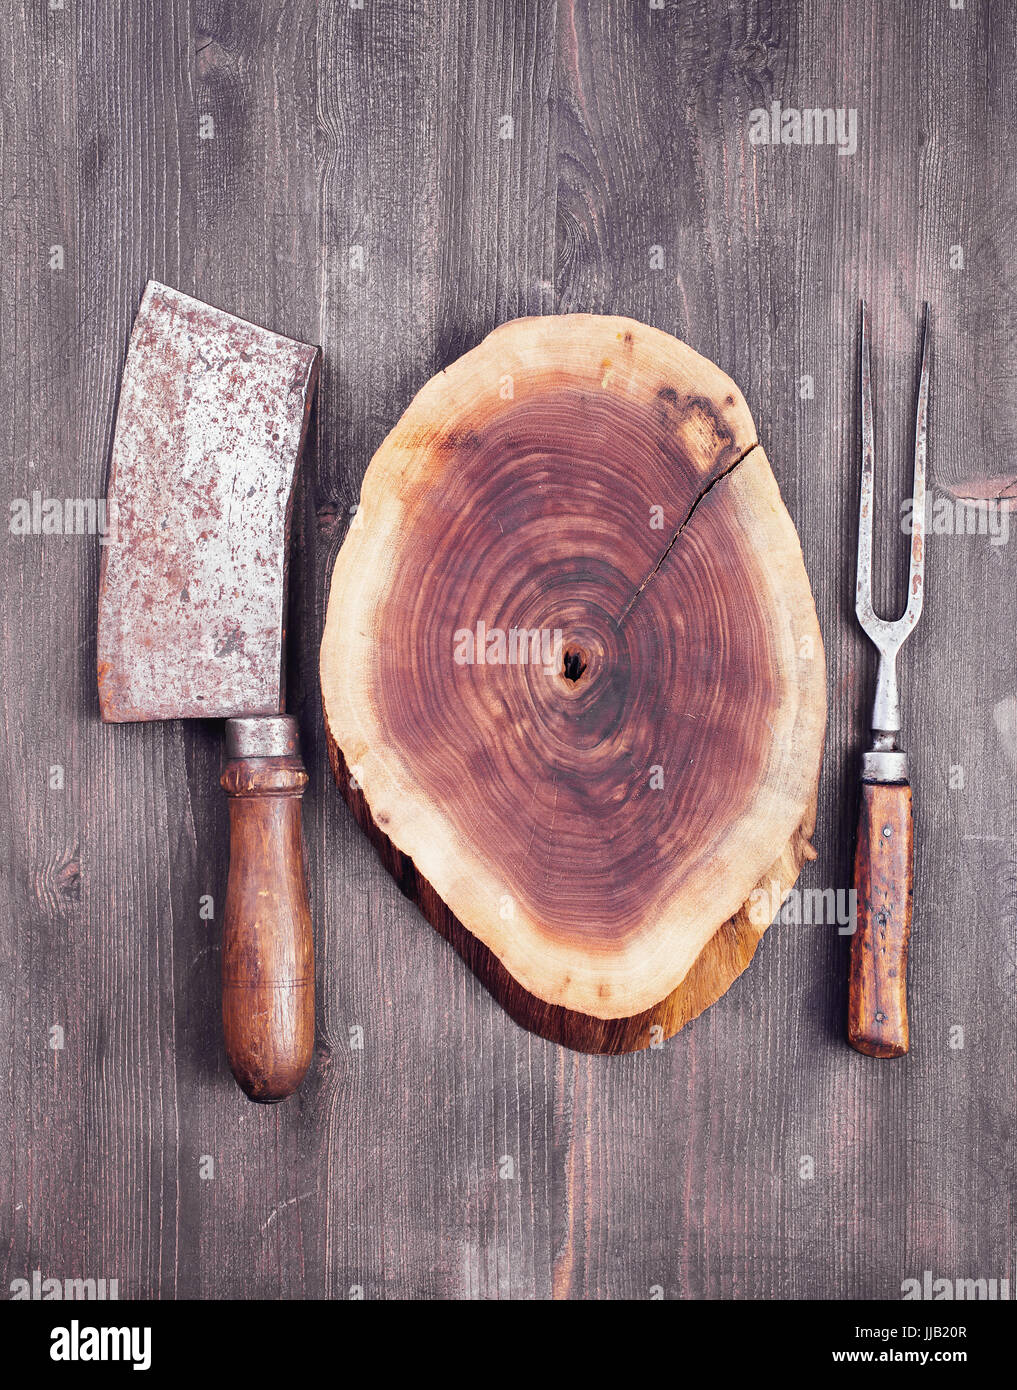 Wooden cut with cleaver knife and fork - Stock Image